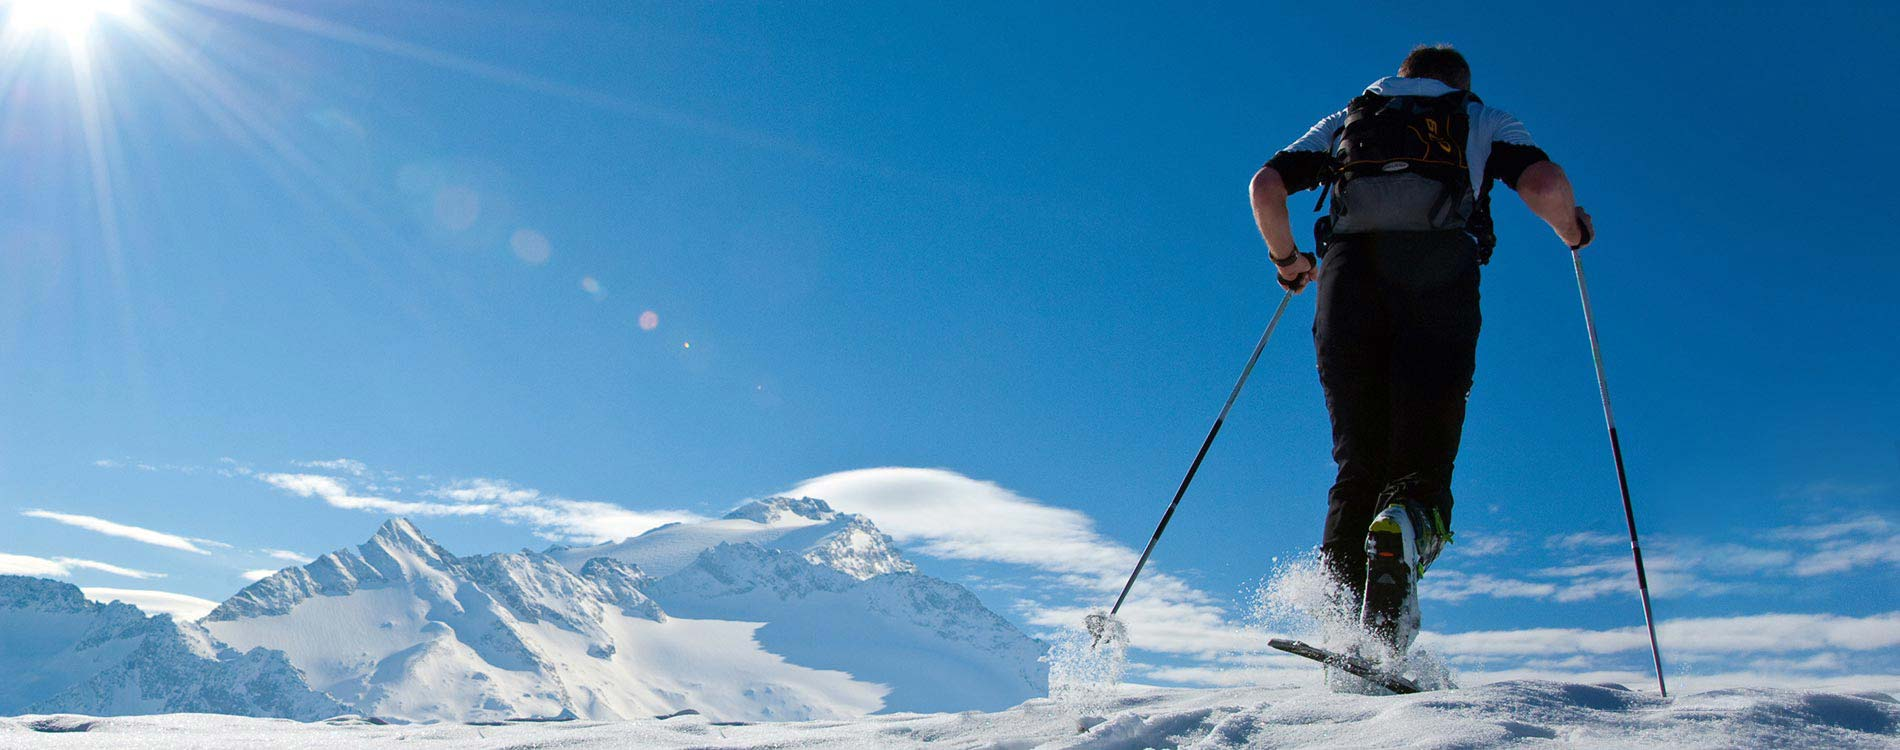 Ski touring holiday - Niche Destinations 4-star-superior hotel GROSSARLER HOF ski touring sunshine